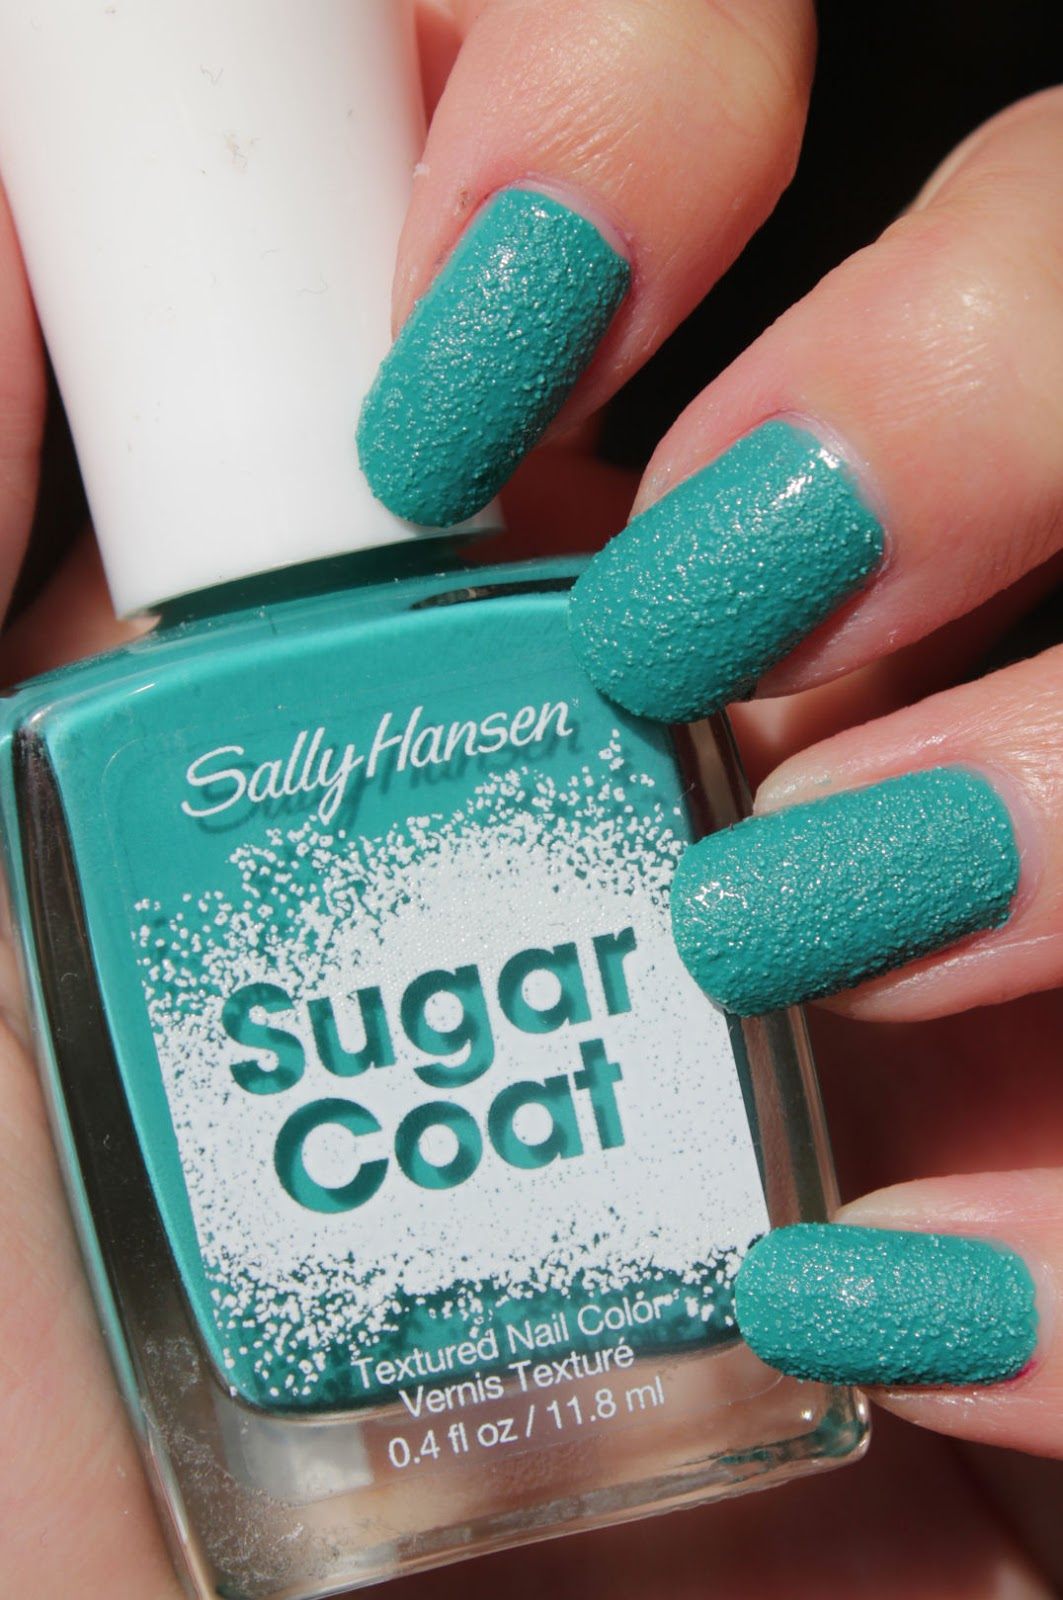 http://lacquediction.blogspot.de/2015/05/sally-hansen-sugar-coat-250-spare-mint.html